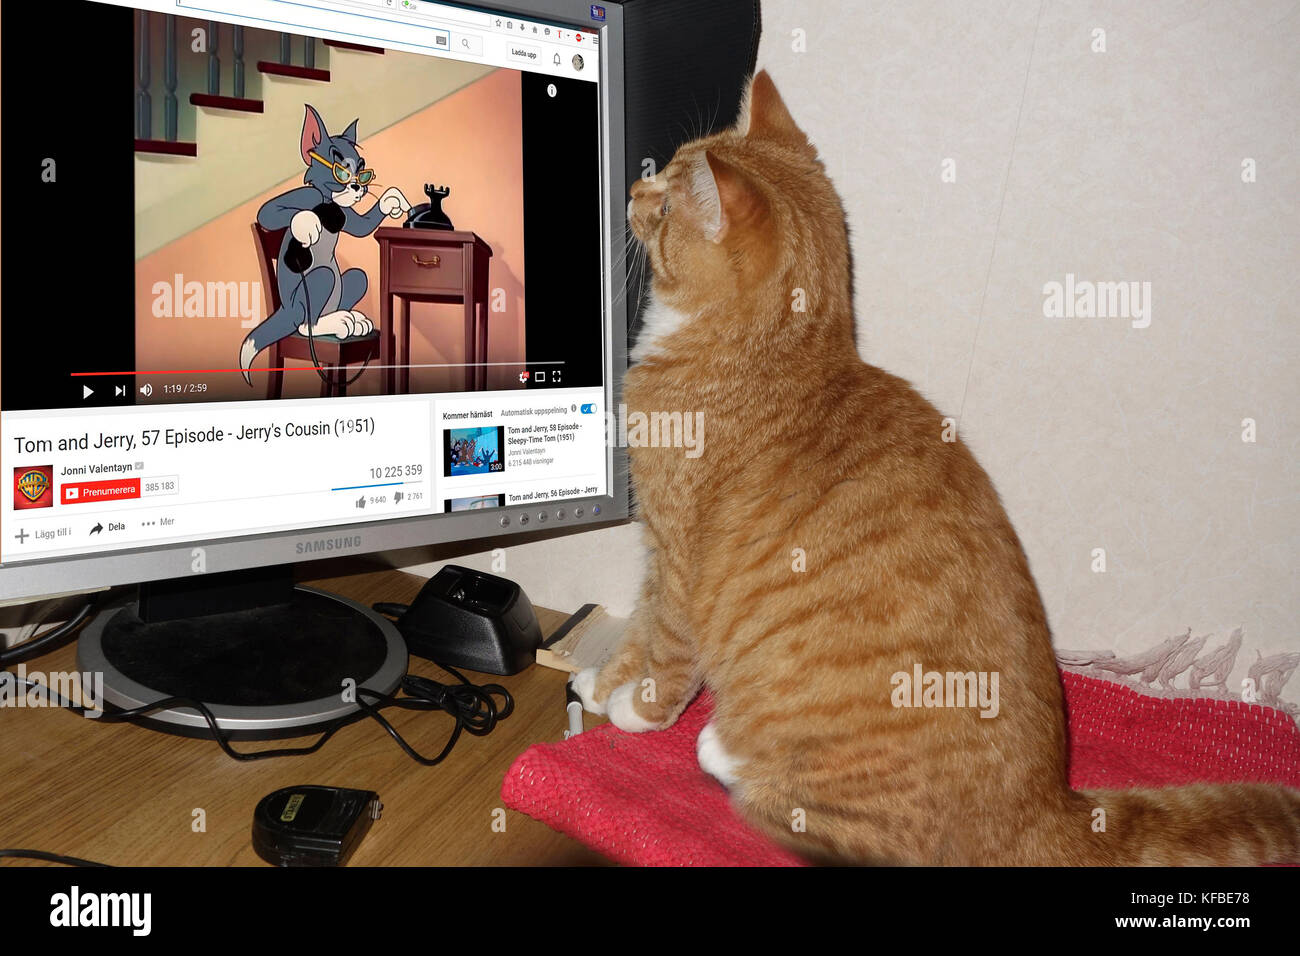 A ginger tabby cat watches animated Tom & Jerry on YouTube - Stock Image